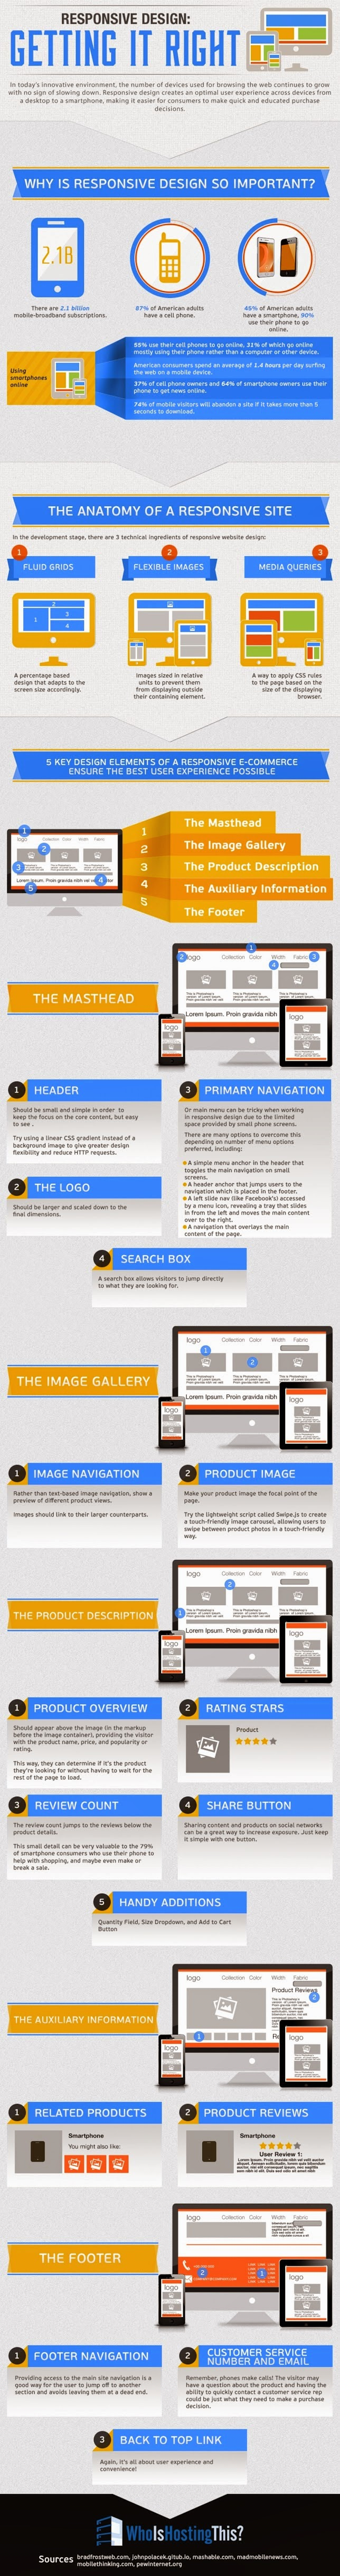 Responsive Design: Getting it Right